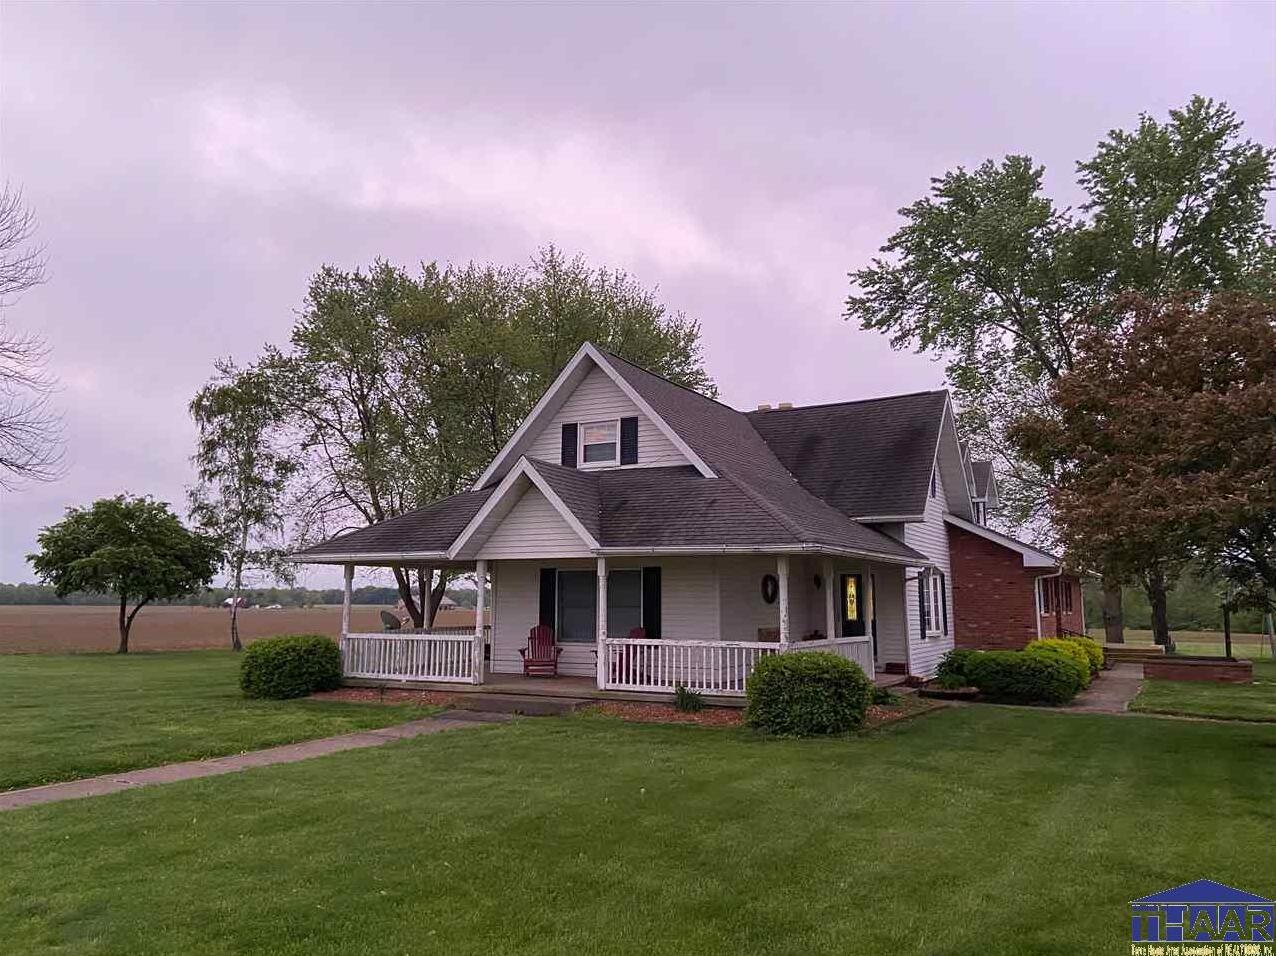 Photo of 789 Co Rd 1100 North Farmersburg IN 47850